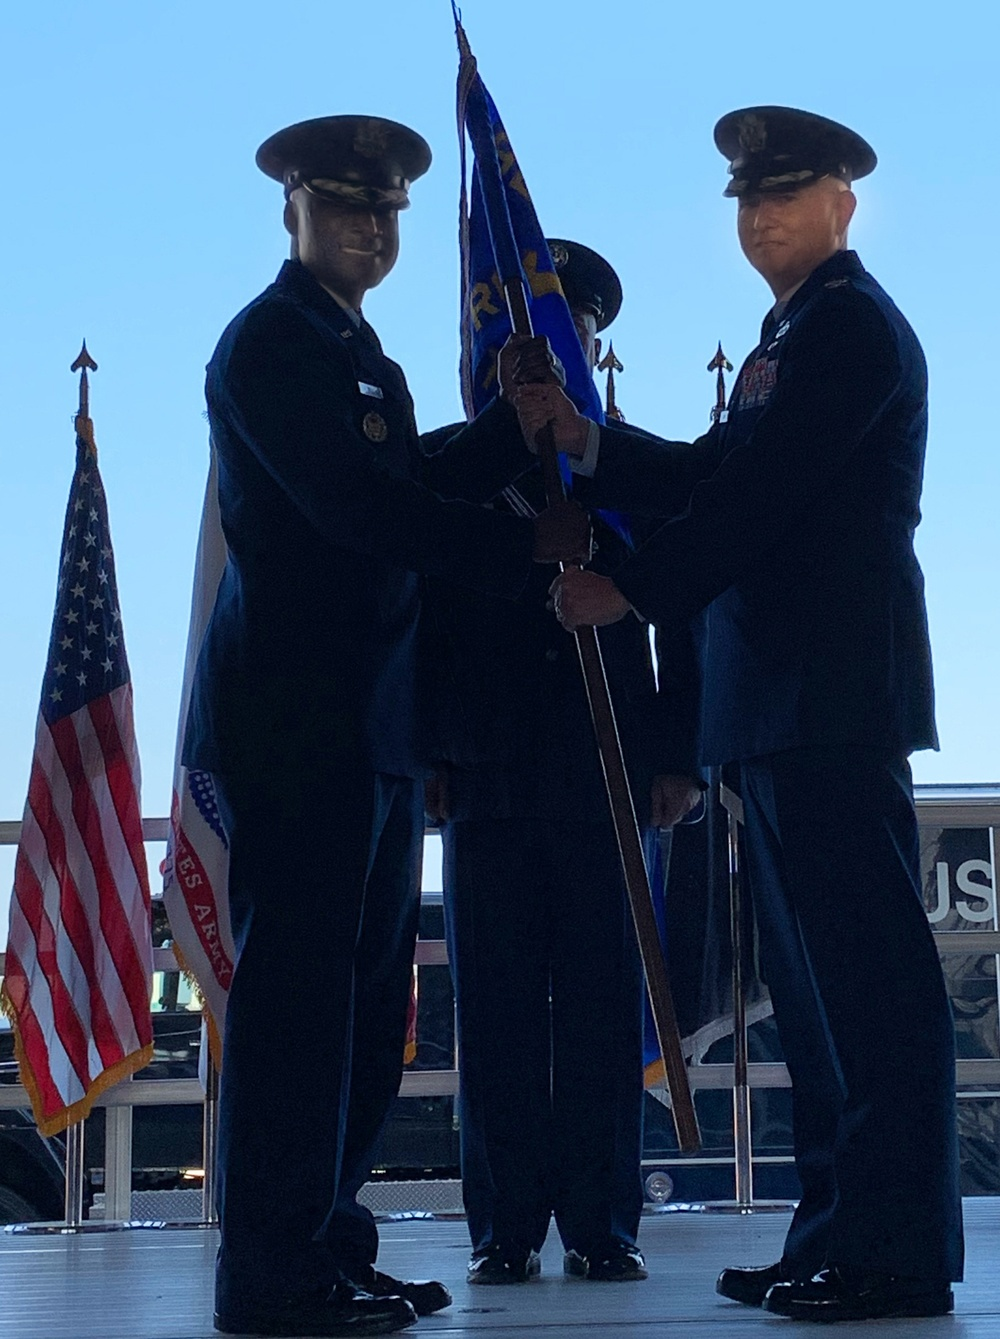 782nd TRG Change of Command